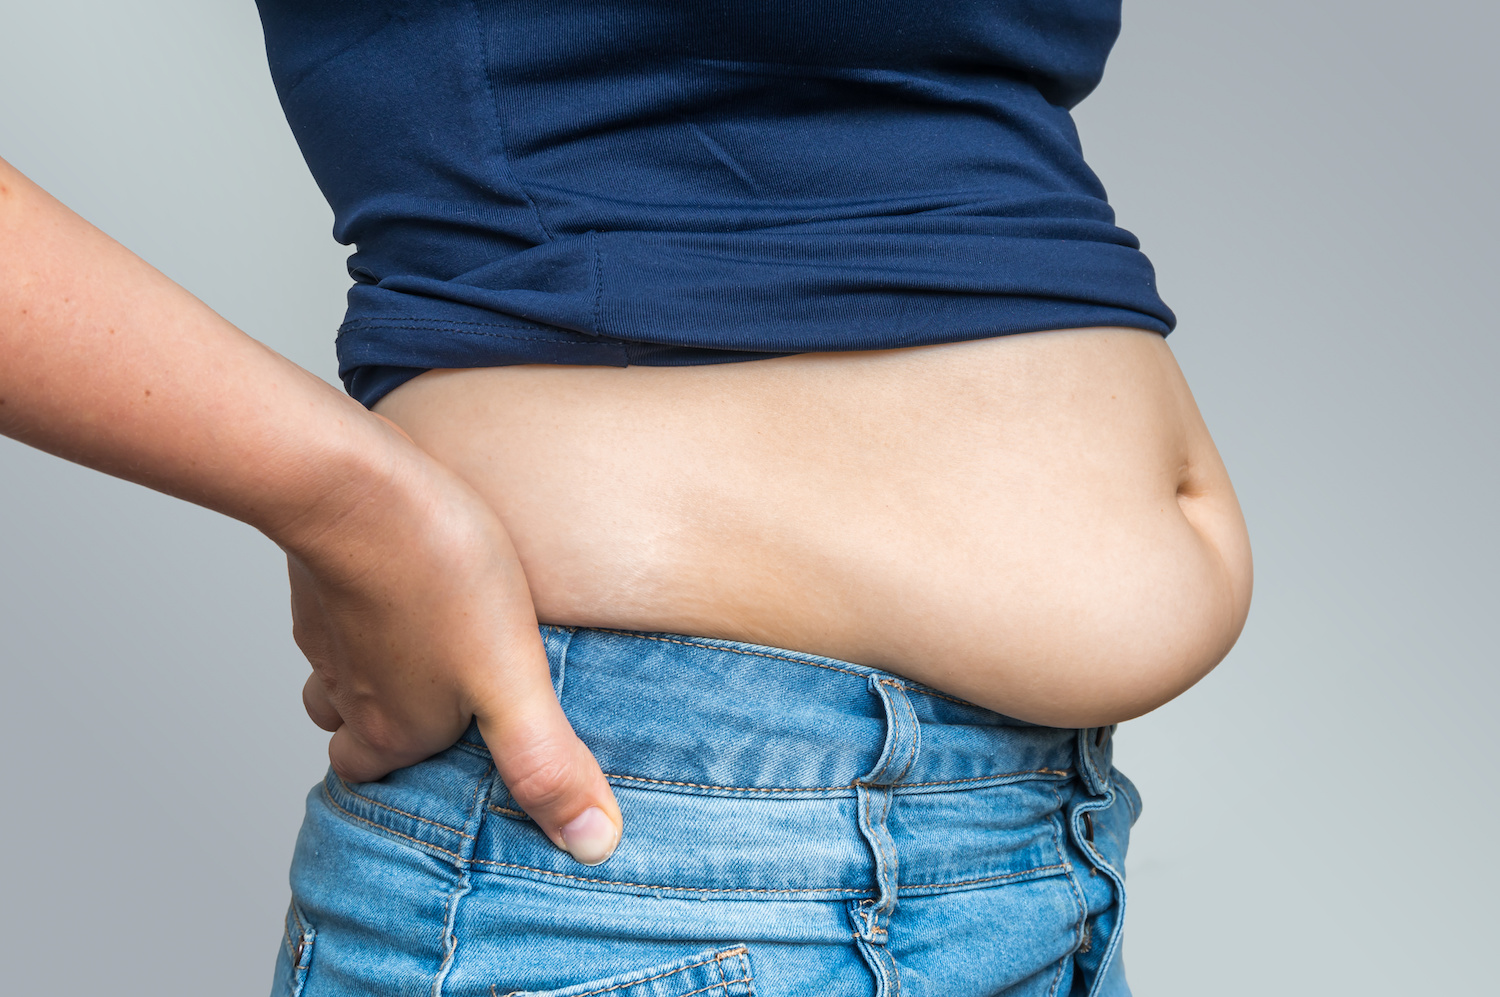 Overweight woman in jeans and fat on hips and belly